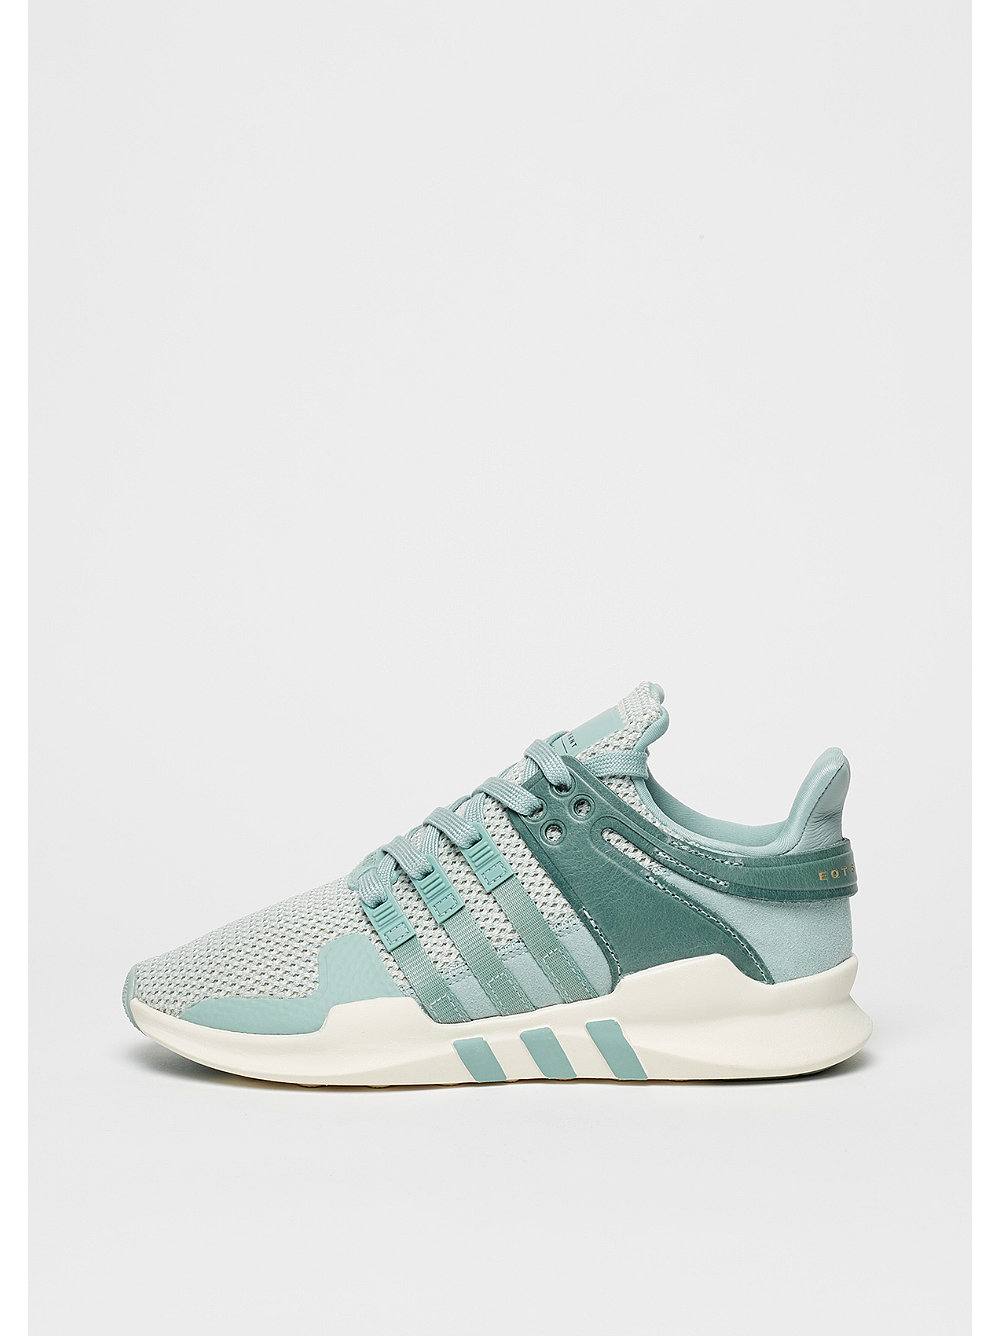 adidas EQT Support ADV tactile green-tactile green-off white